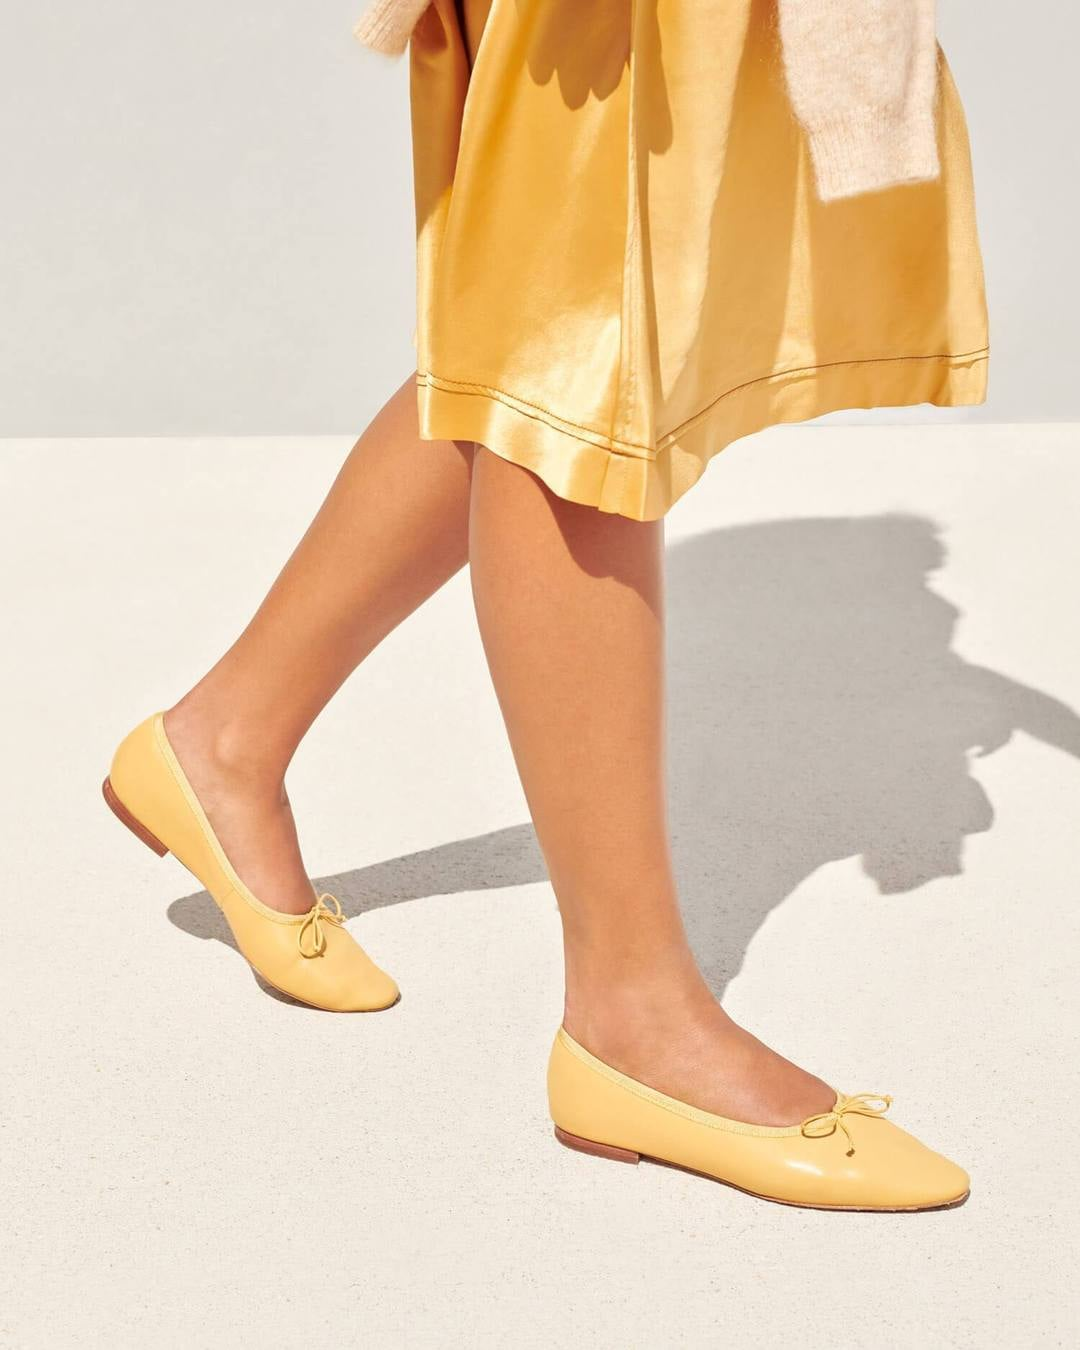 20 Of The Best And Most Comfortable Flats For Women 2021 Popsugar Fashion